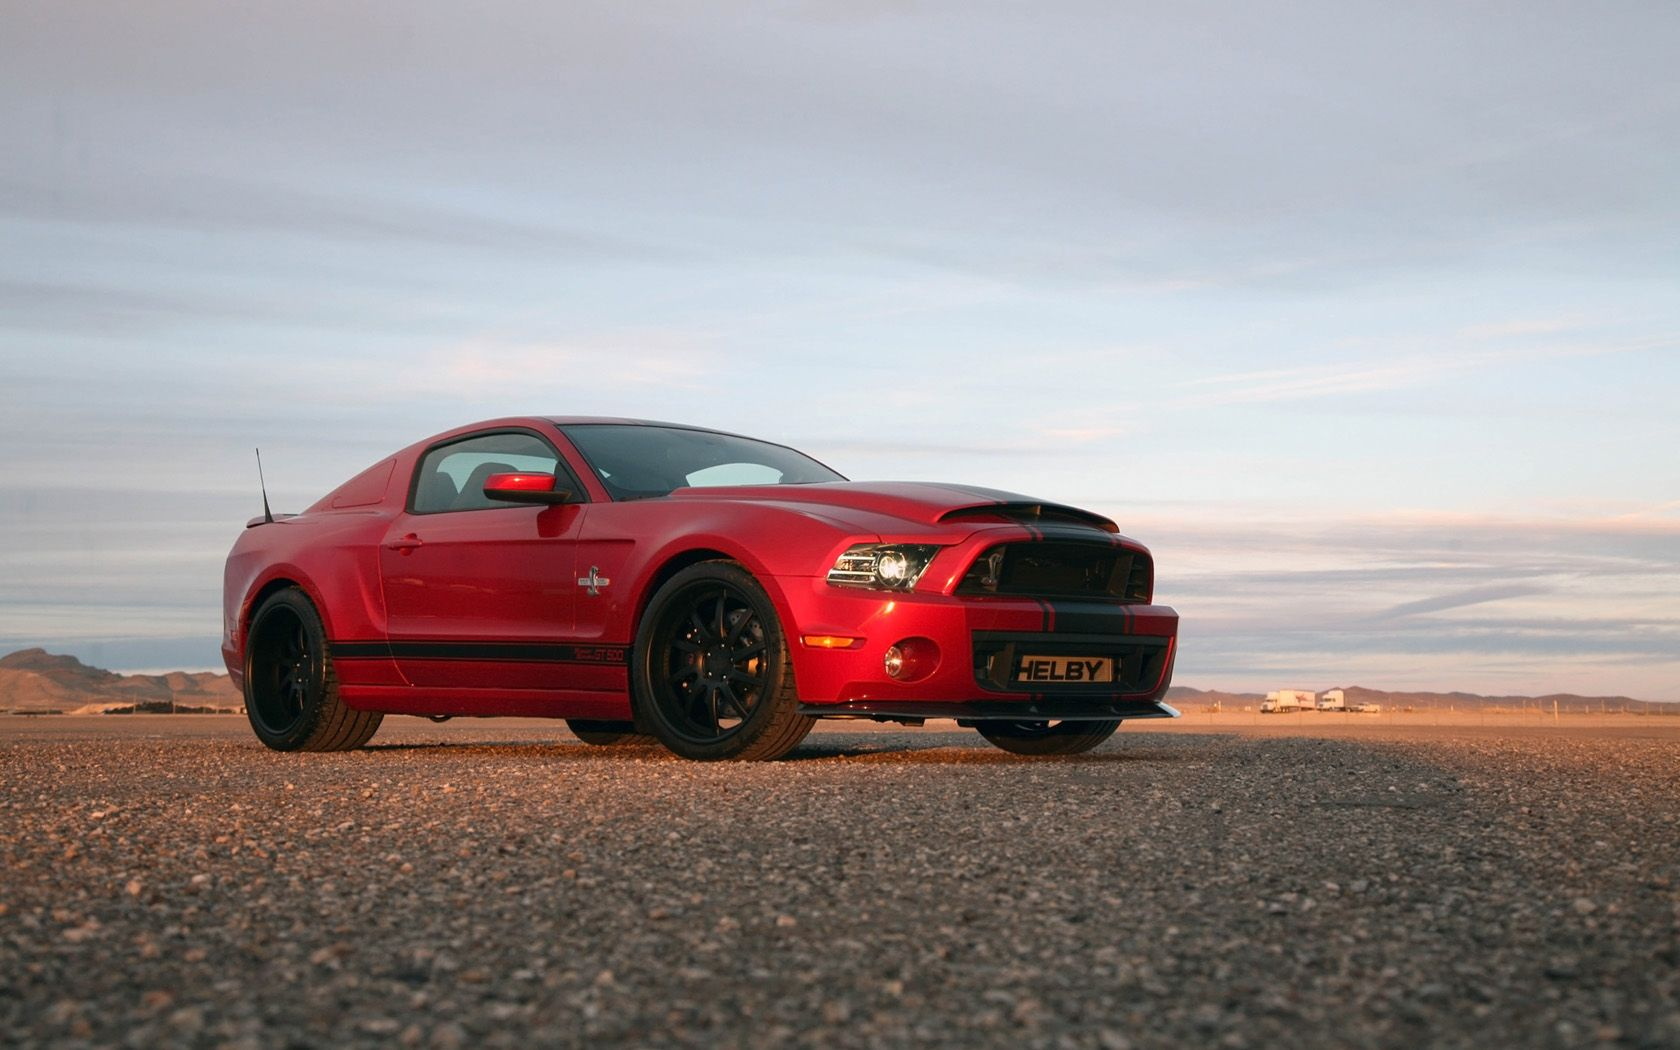 2014 Shelby Gt500 Super Snake Shelby Gt500 Super Snake Wagon Cars Shelby Gt500